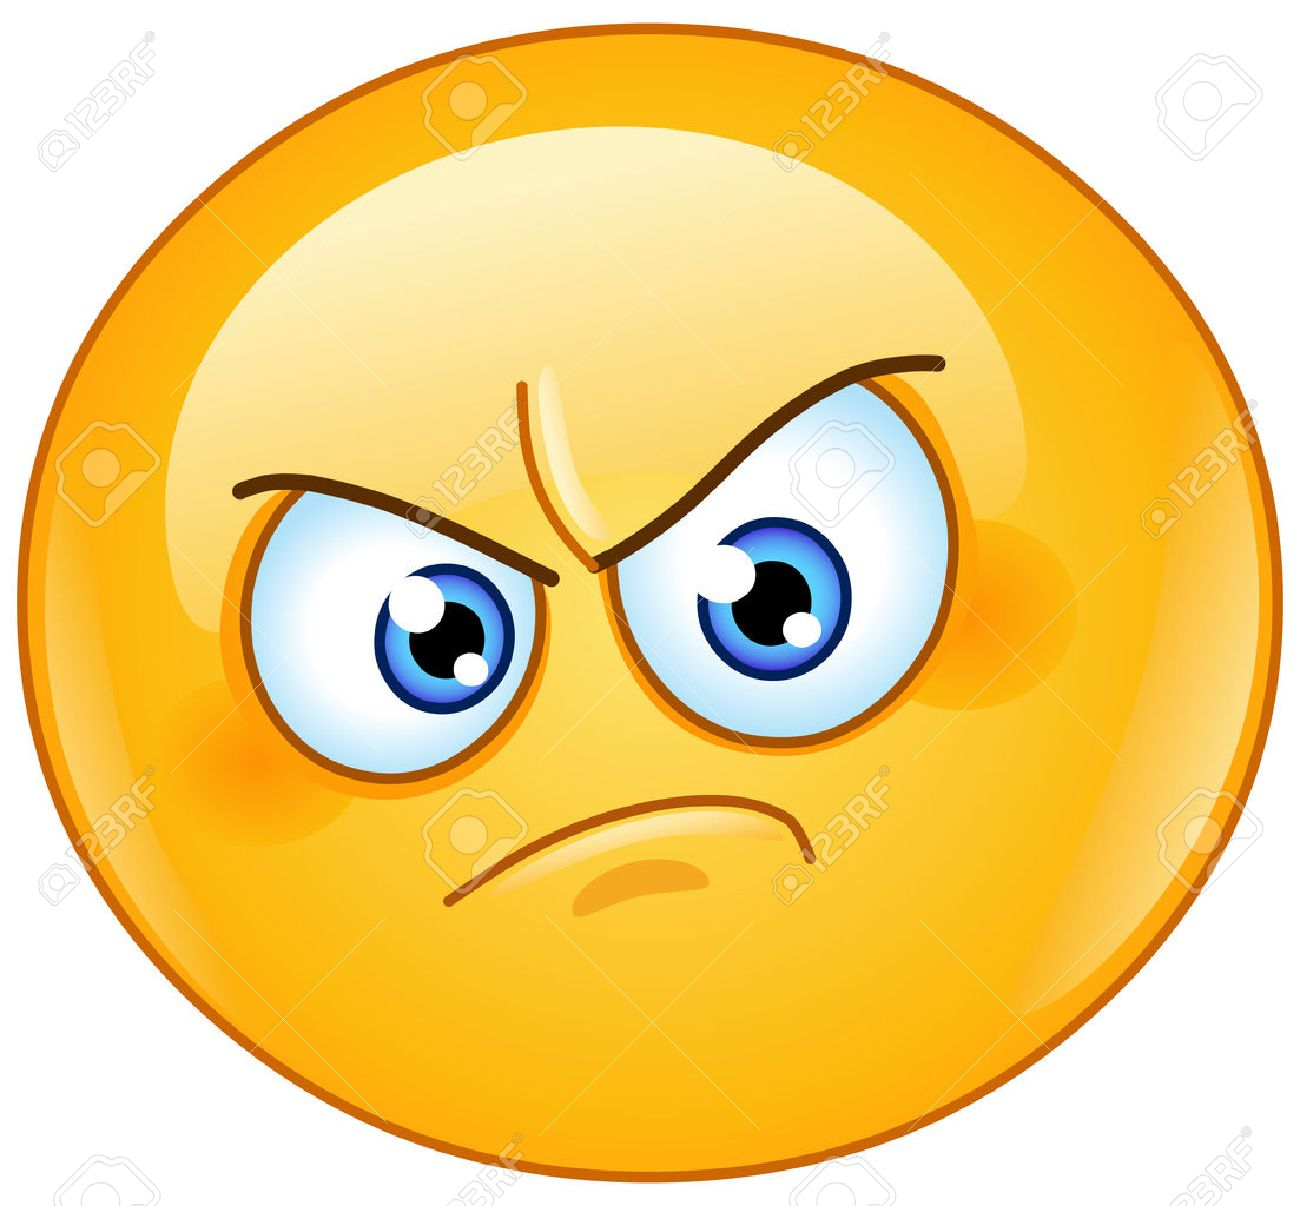 Image result for angry emoticon